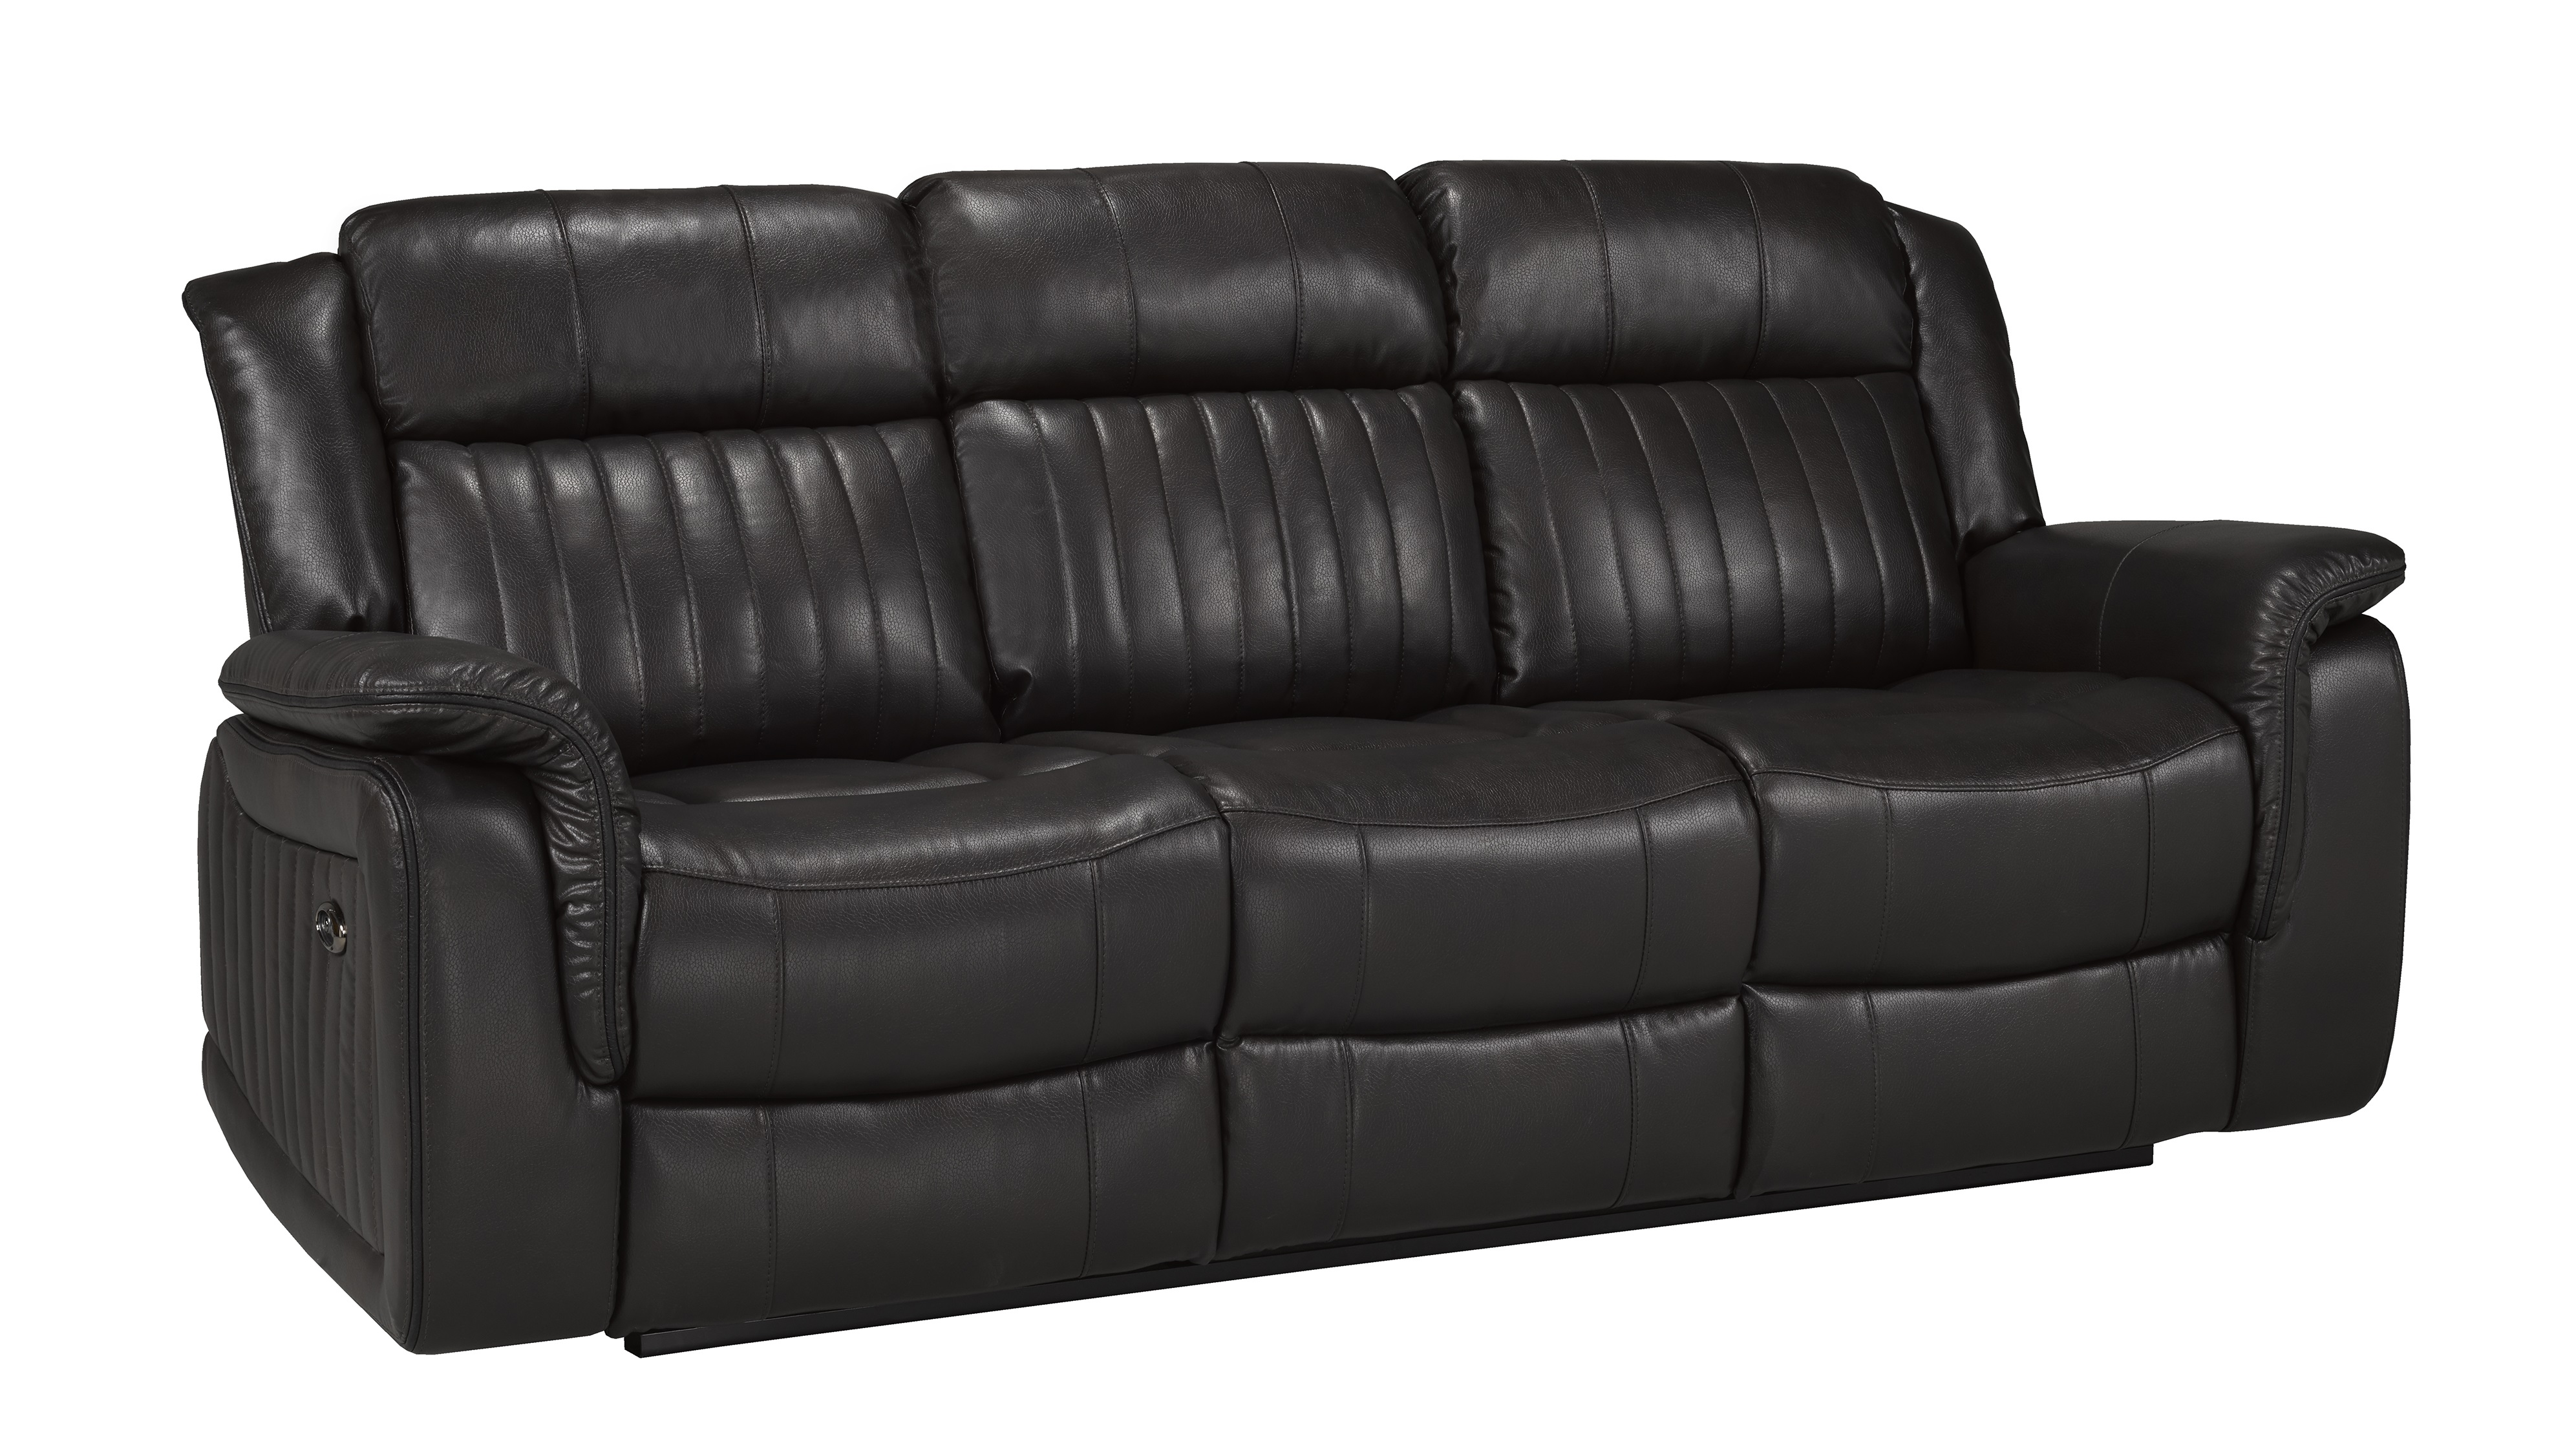 DAKOTA POWER RECLINER SOFA